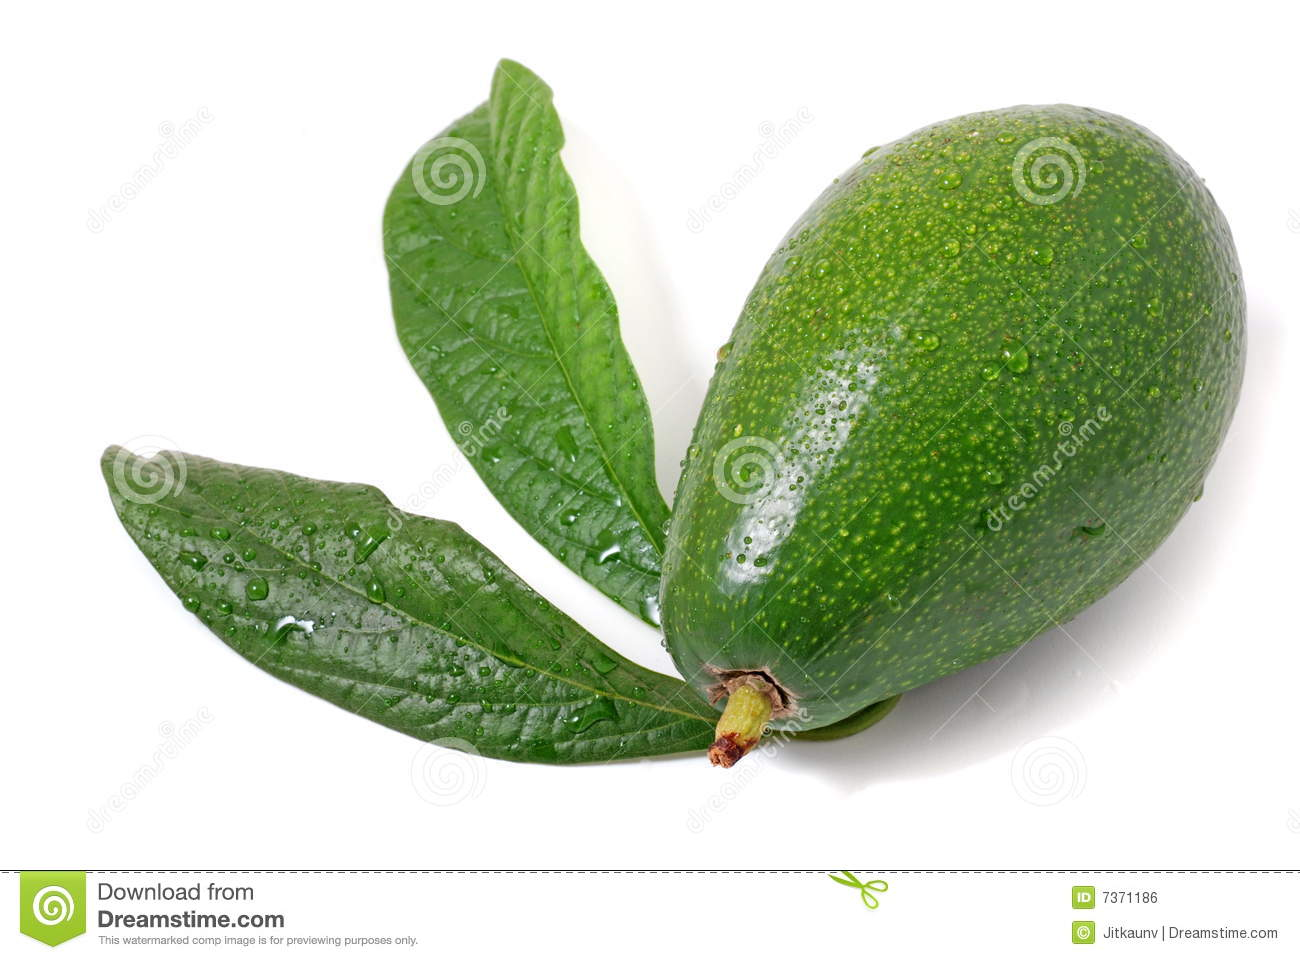 is an avocado a fruit or vegetable is sugar from fruit healthy